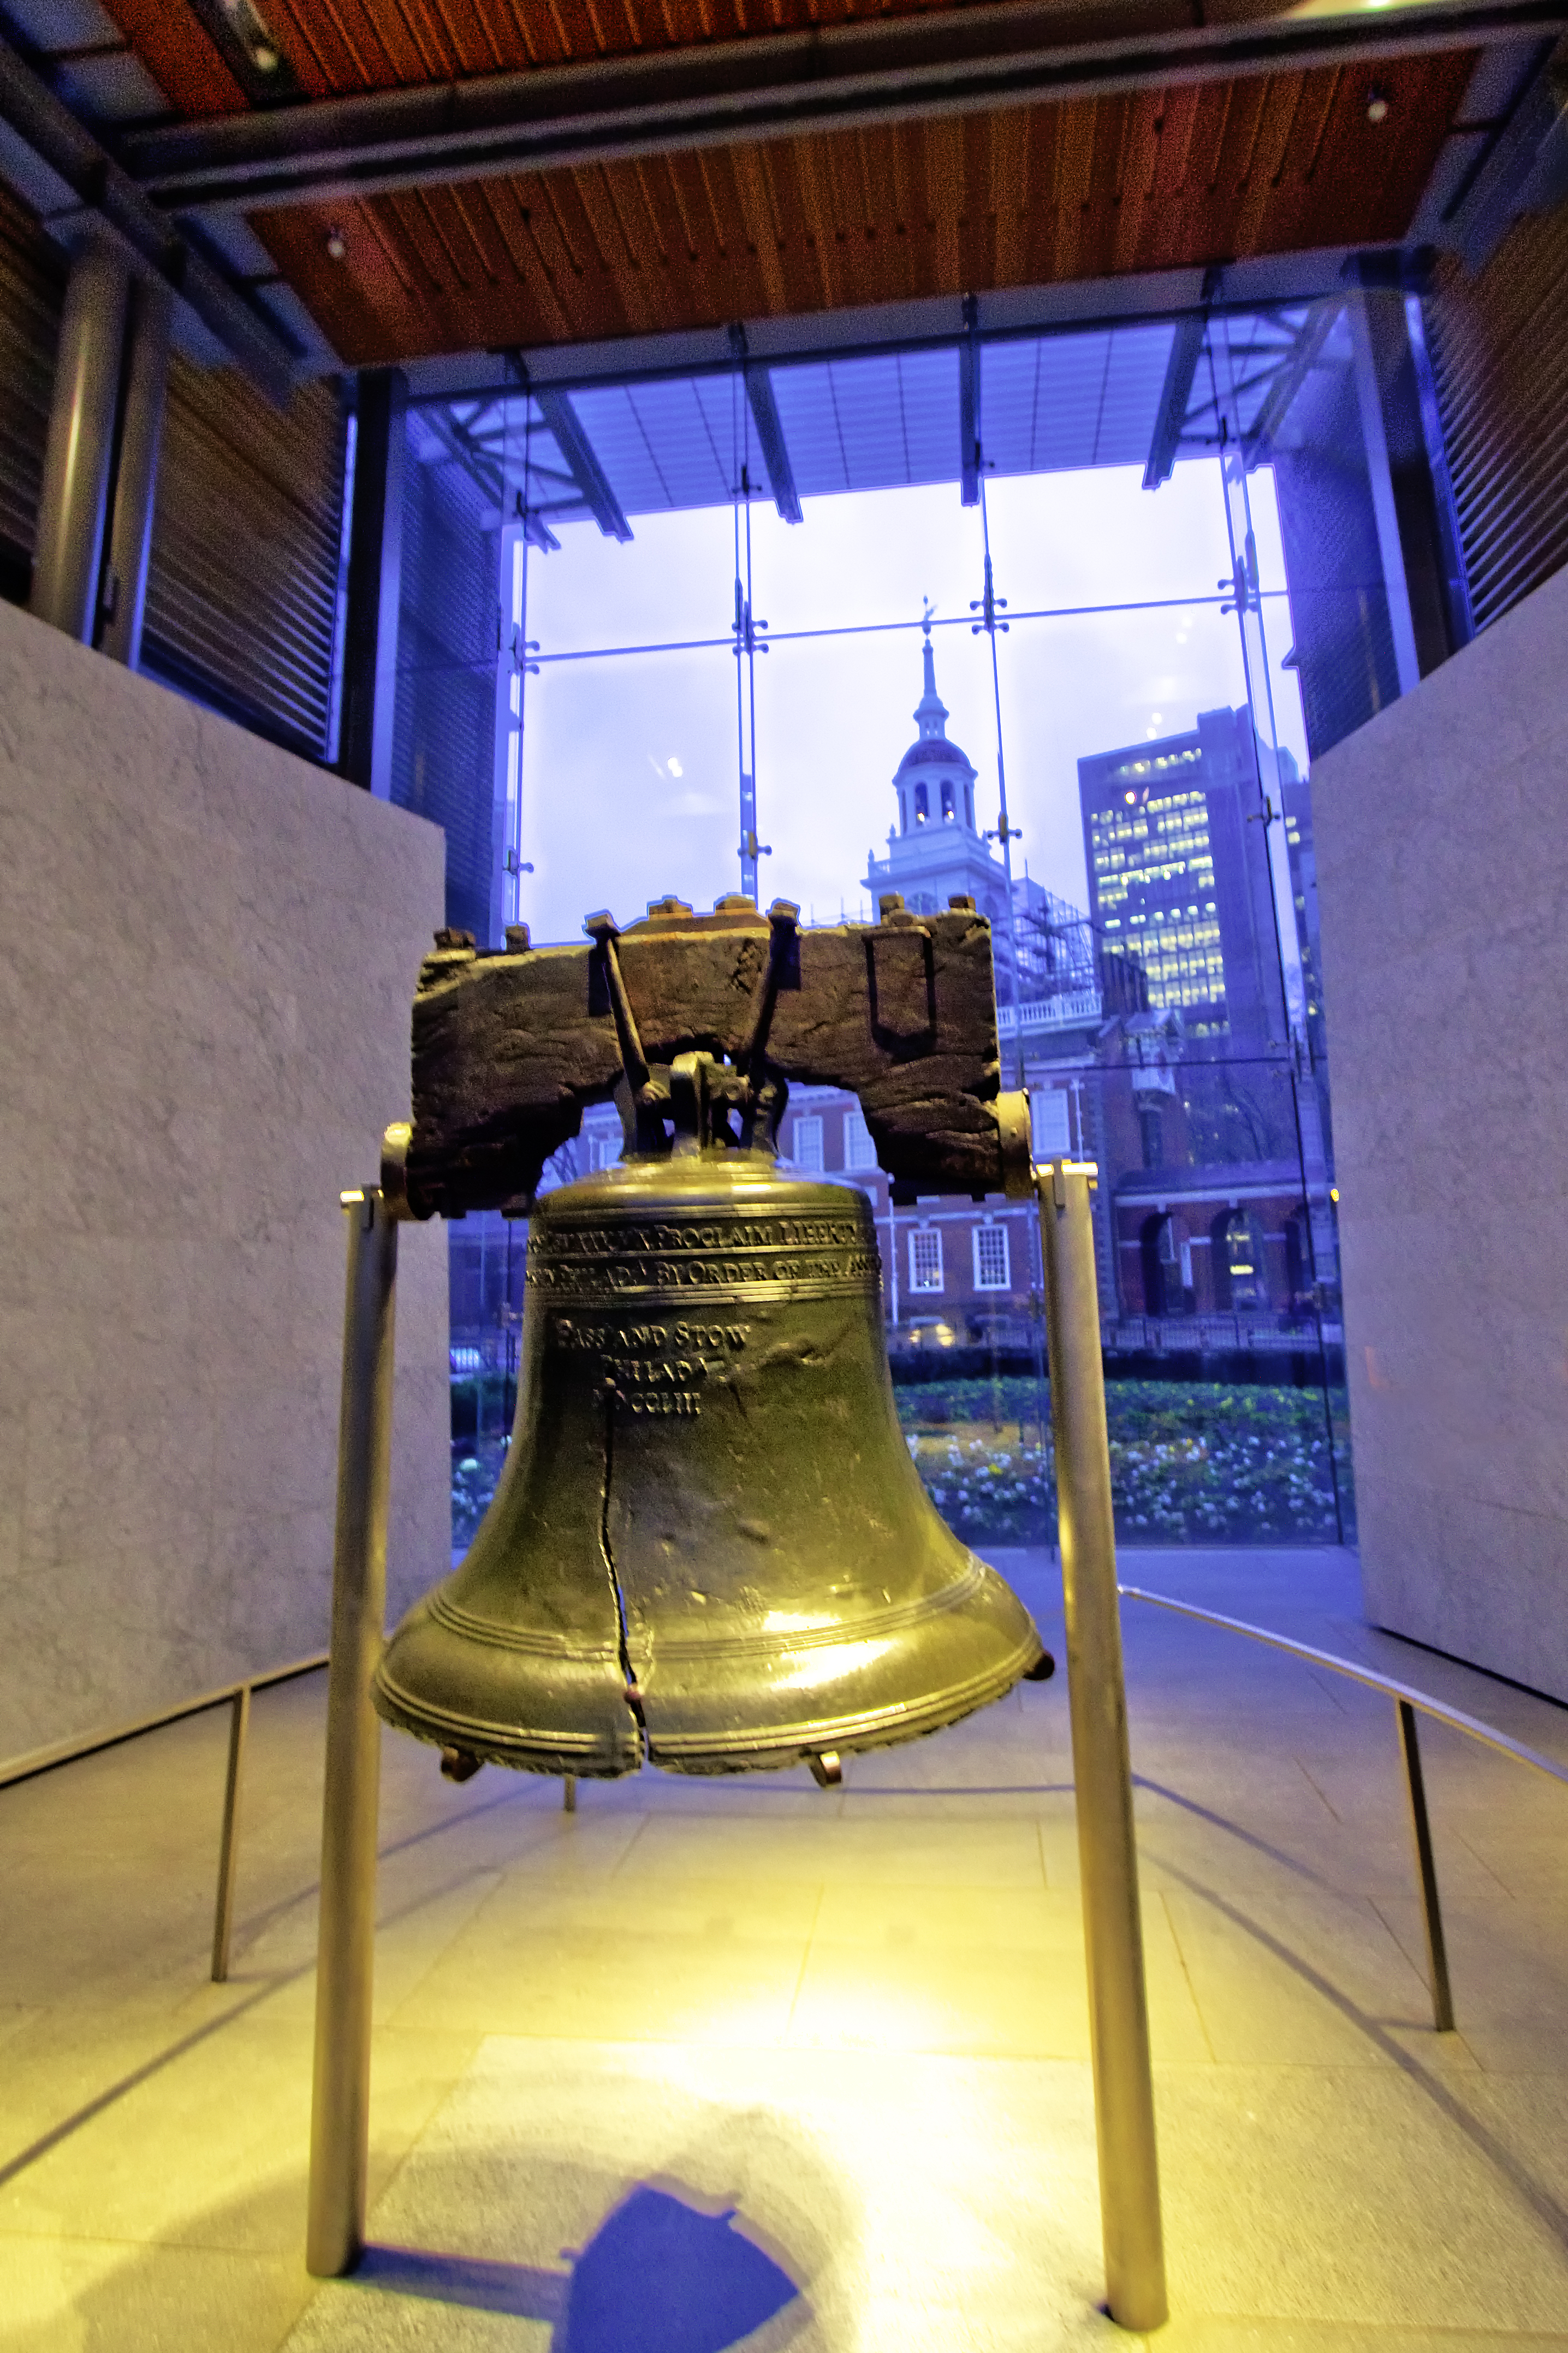 liberty bell In 1981 our founder's family home was robbed that tragic event gave birth to a strong vision for helping others we don't want anyone else to experience the vulnerable feeling we did when we were robbed.